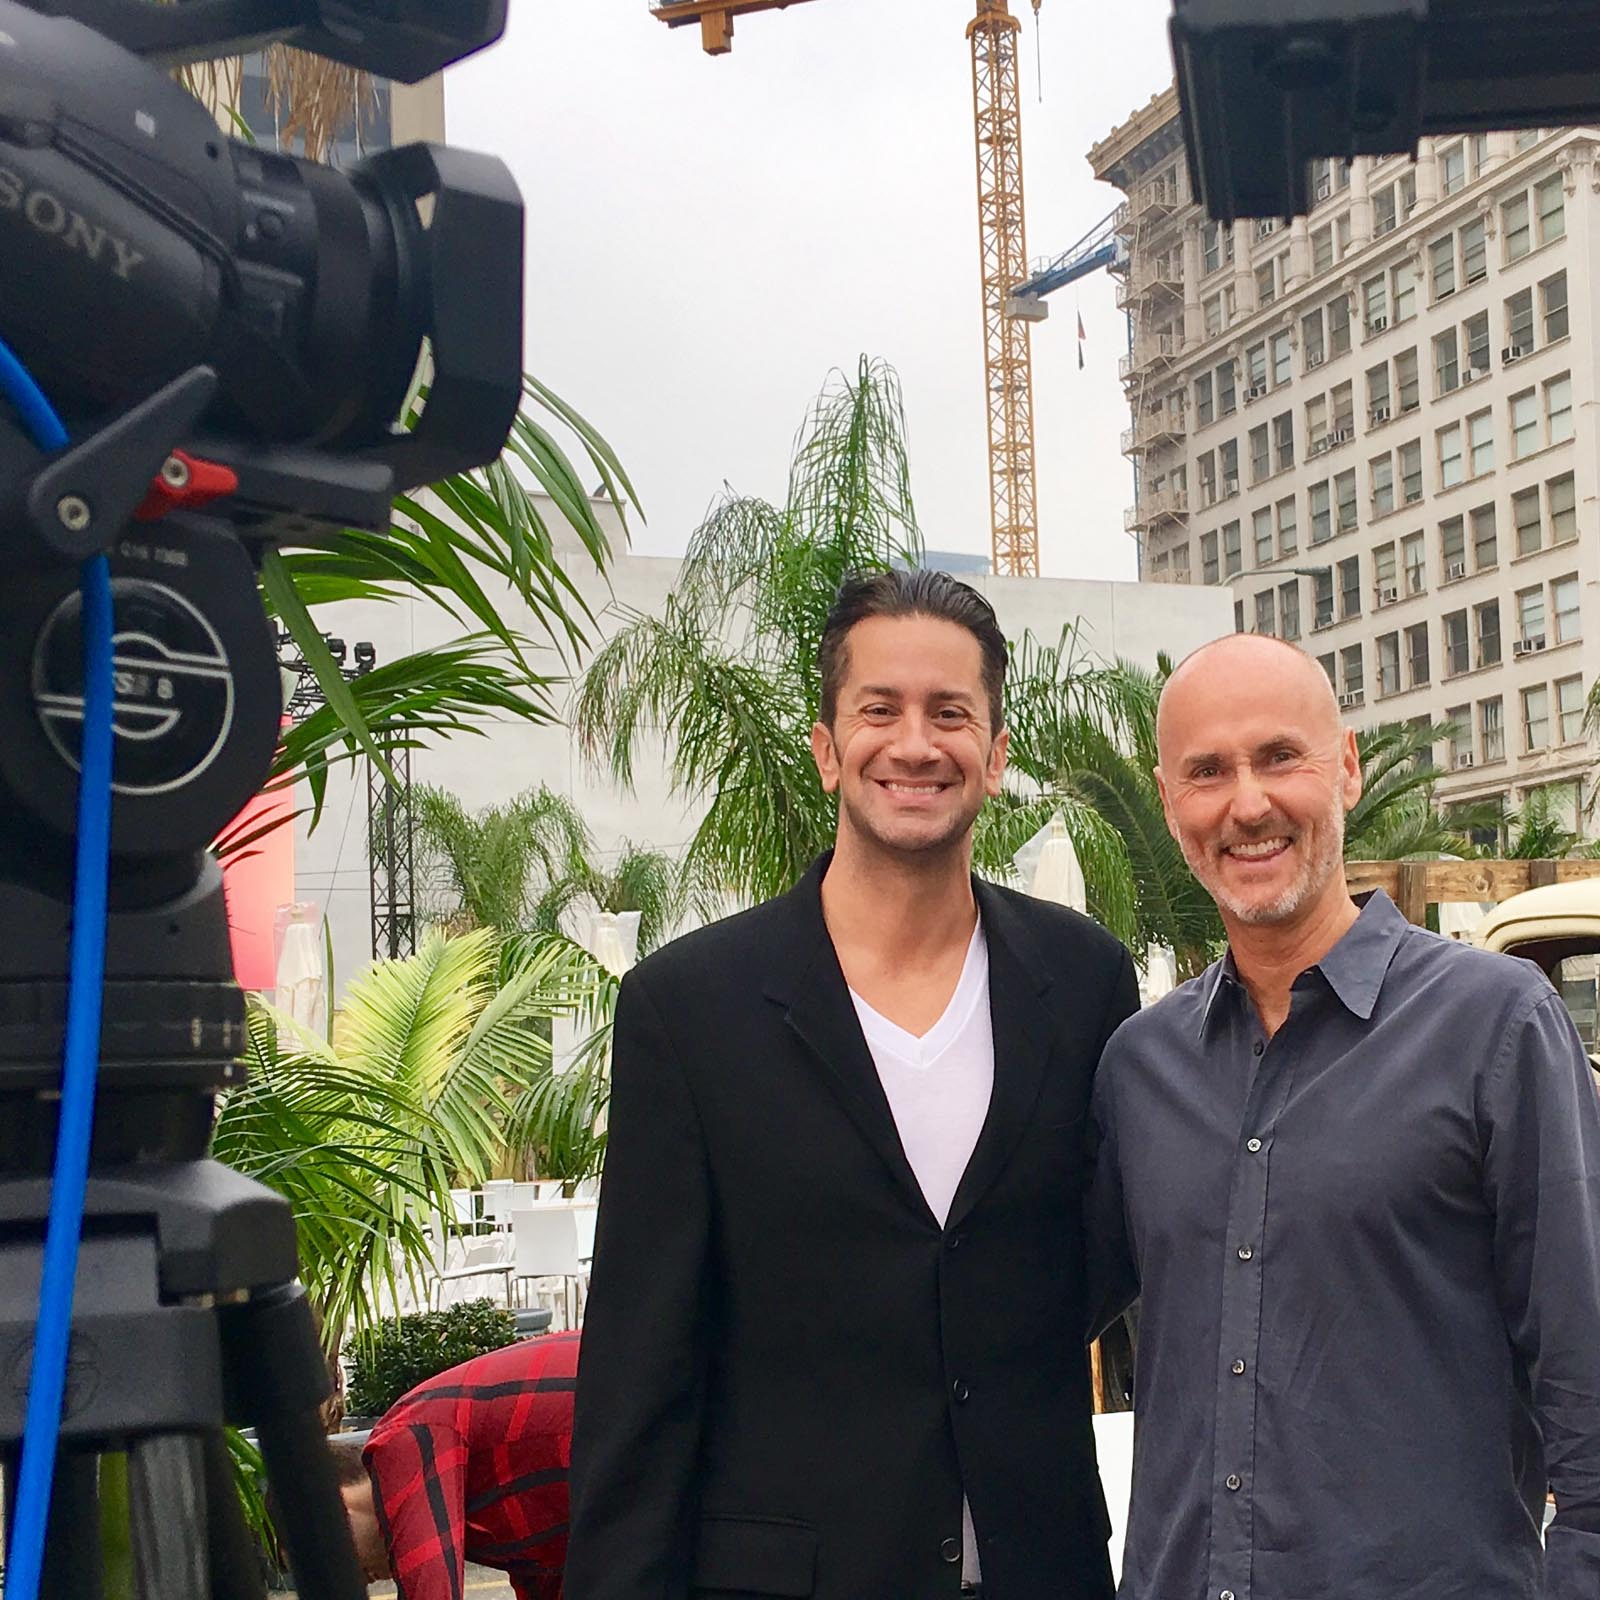 Just before the live TV interview with Chip Conley, Head of Hospitality for AirBnB